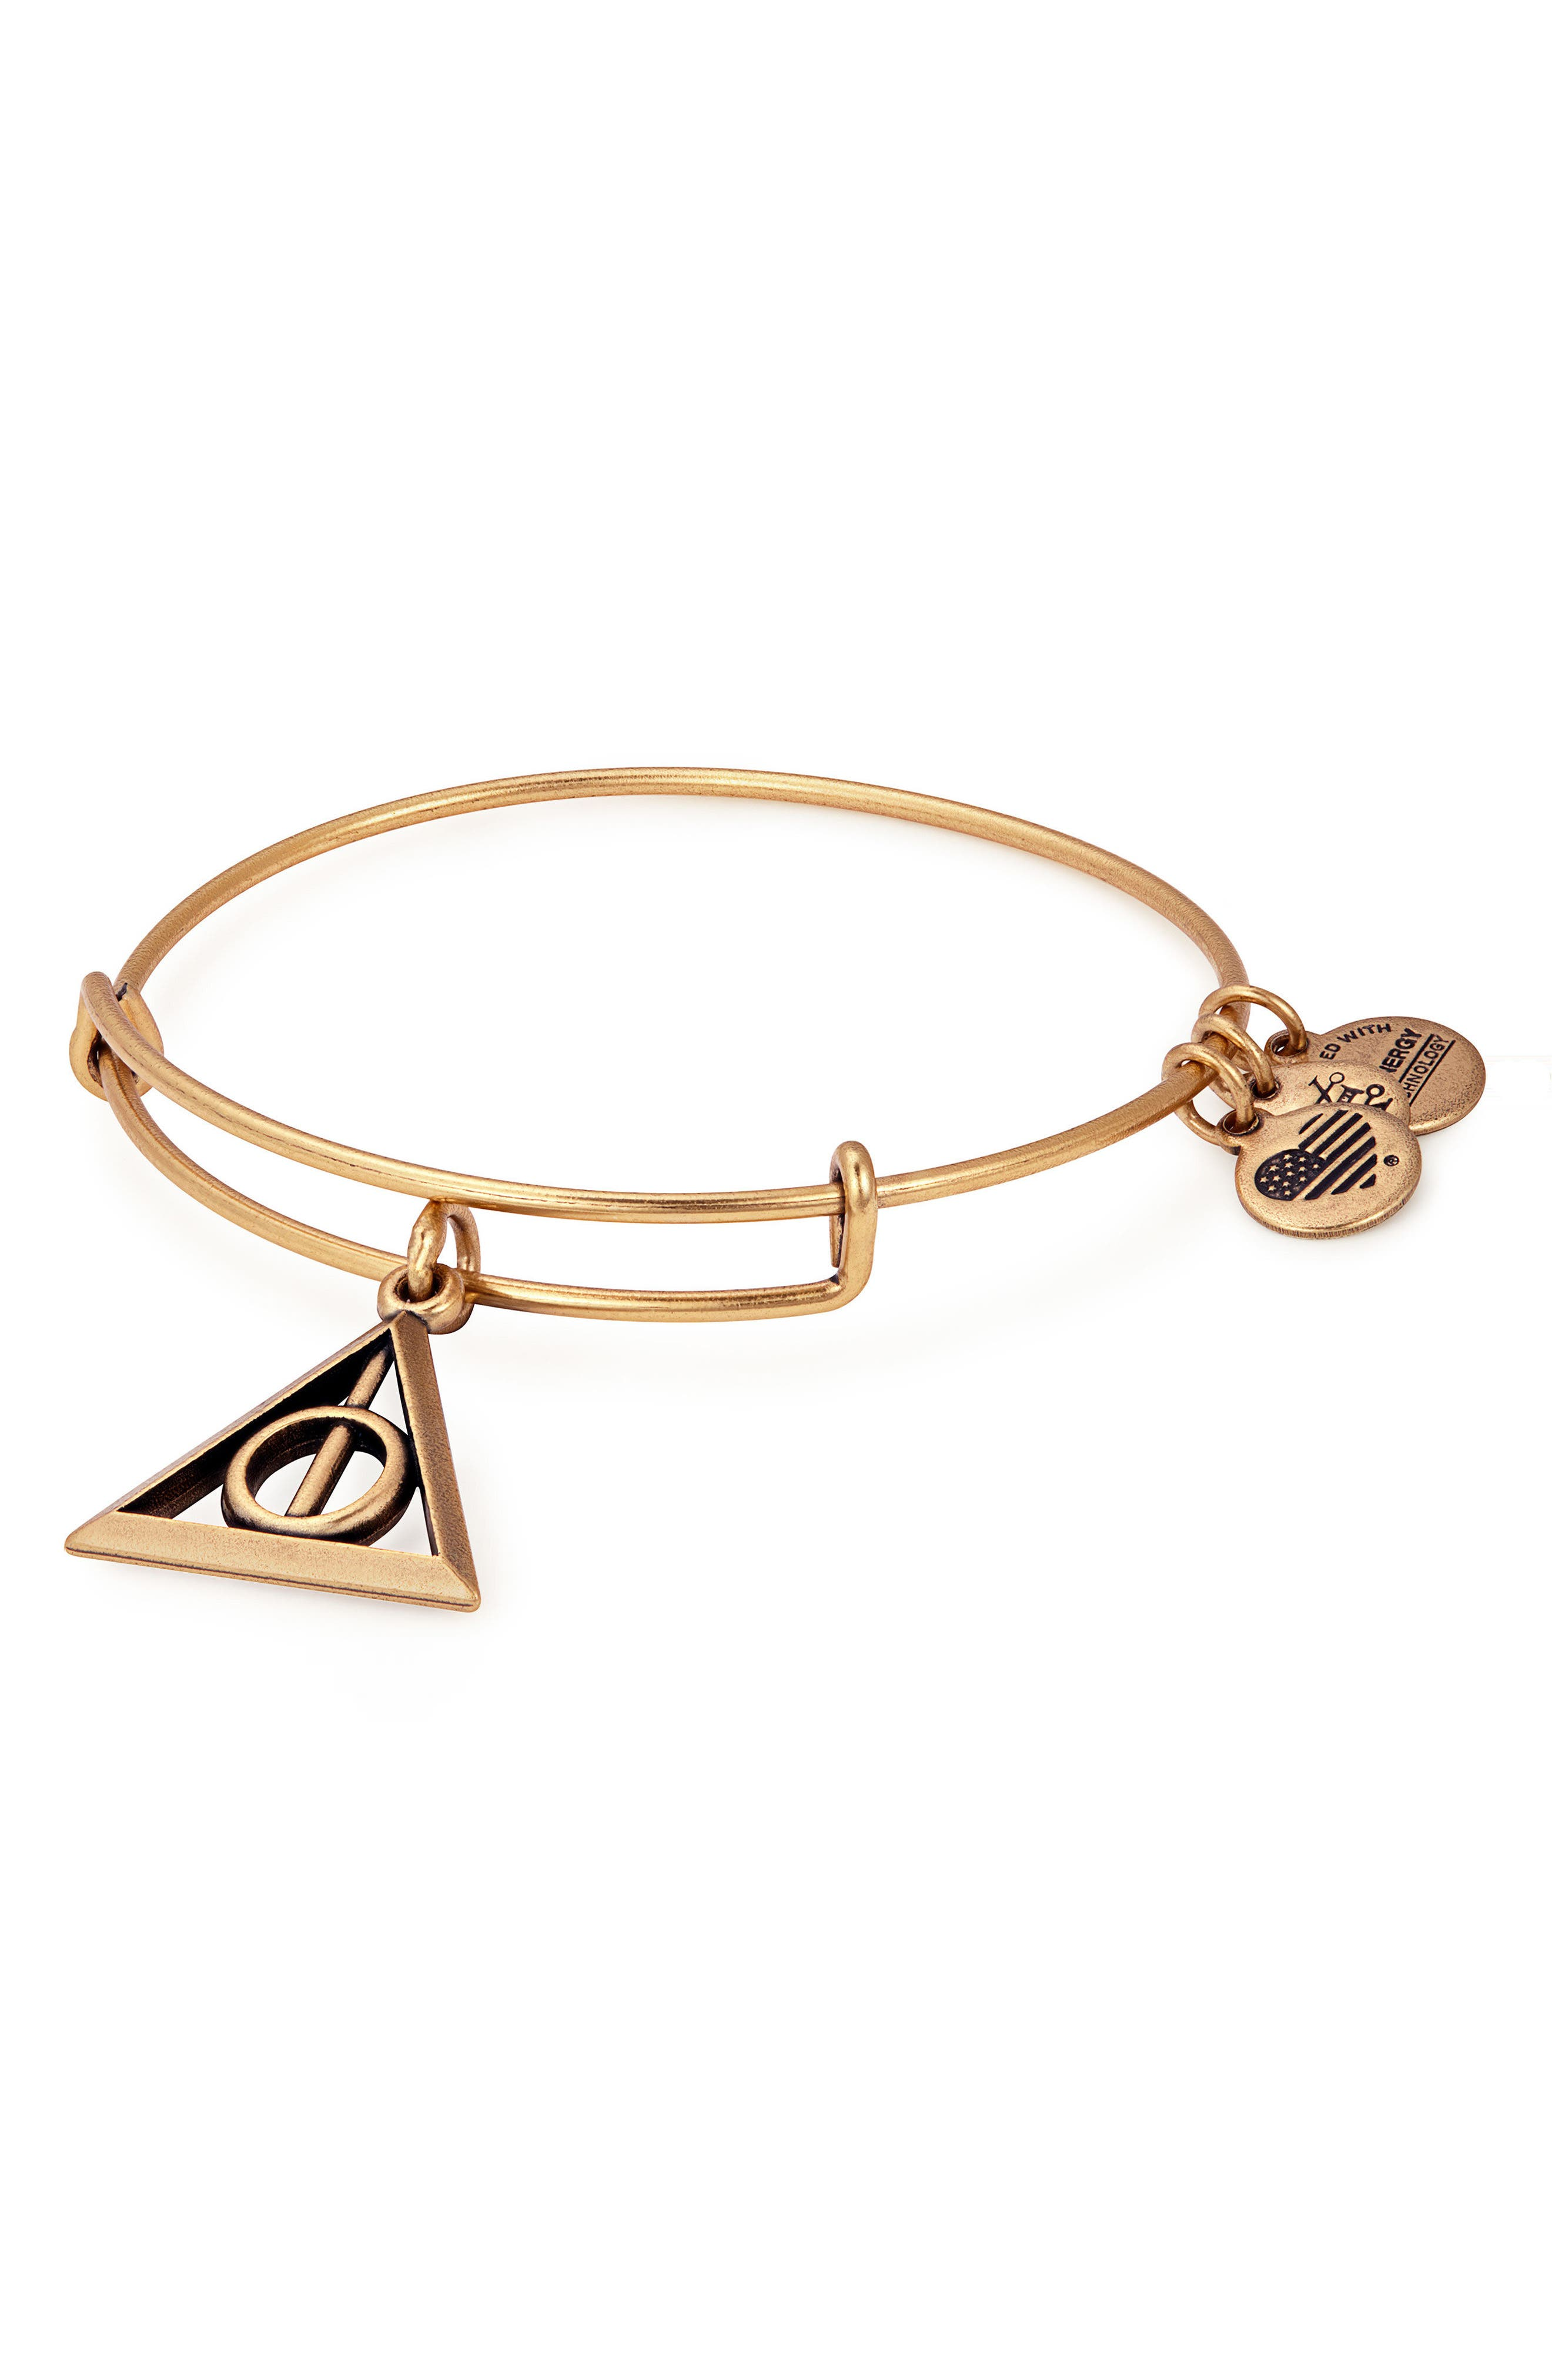 Harry Potter<sup>™</sup> Deathly Hallows<sup>™</sup> Adjustable Wire Bangle,                             Main thumbnail 1, color,                             GOLD